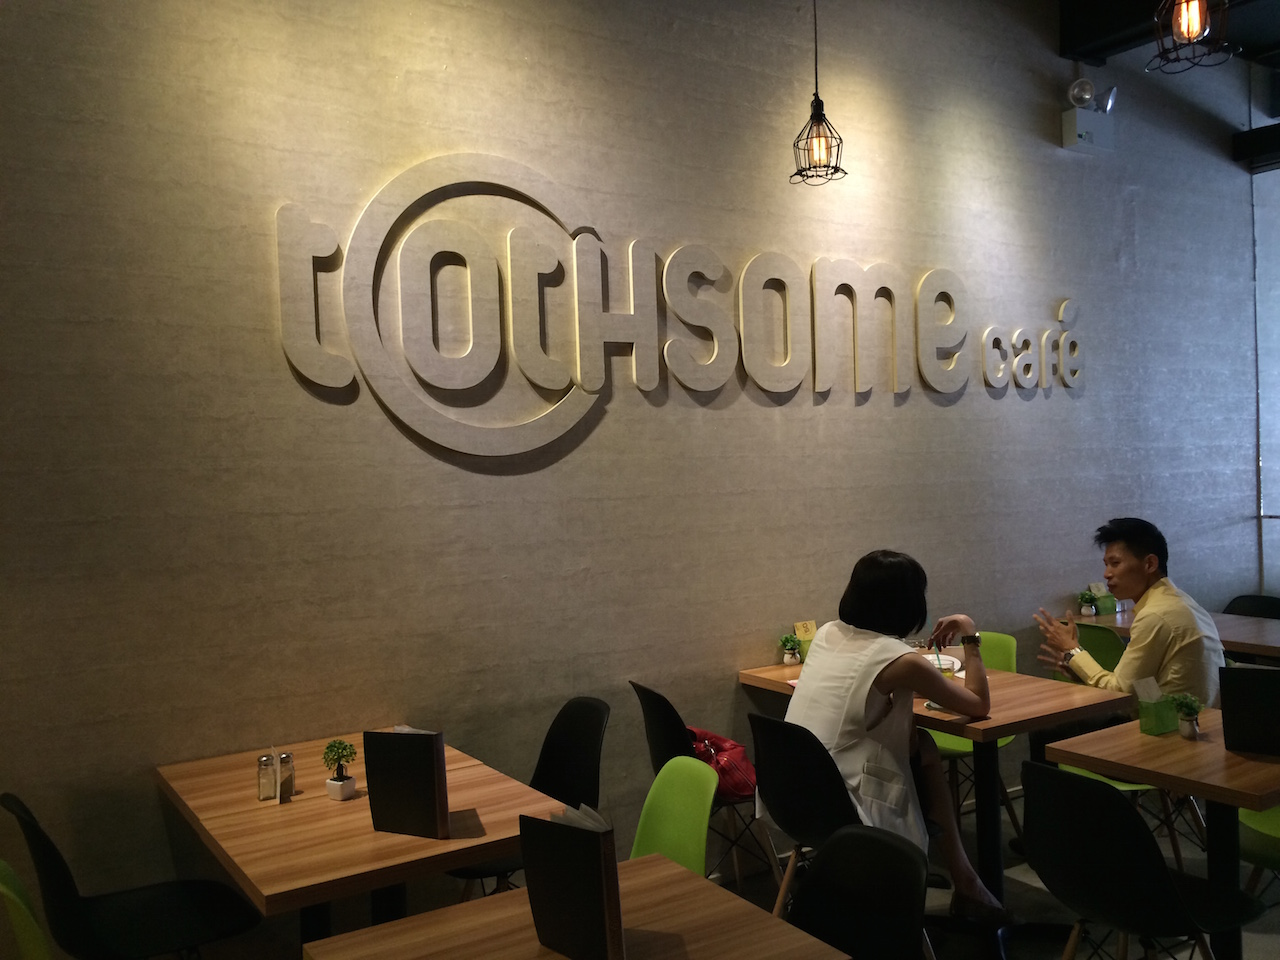 Toothsome Cafe at 368 Tanjong Katong road